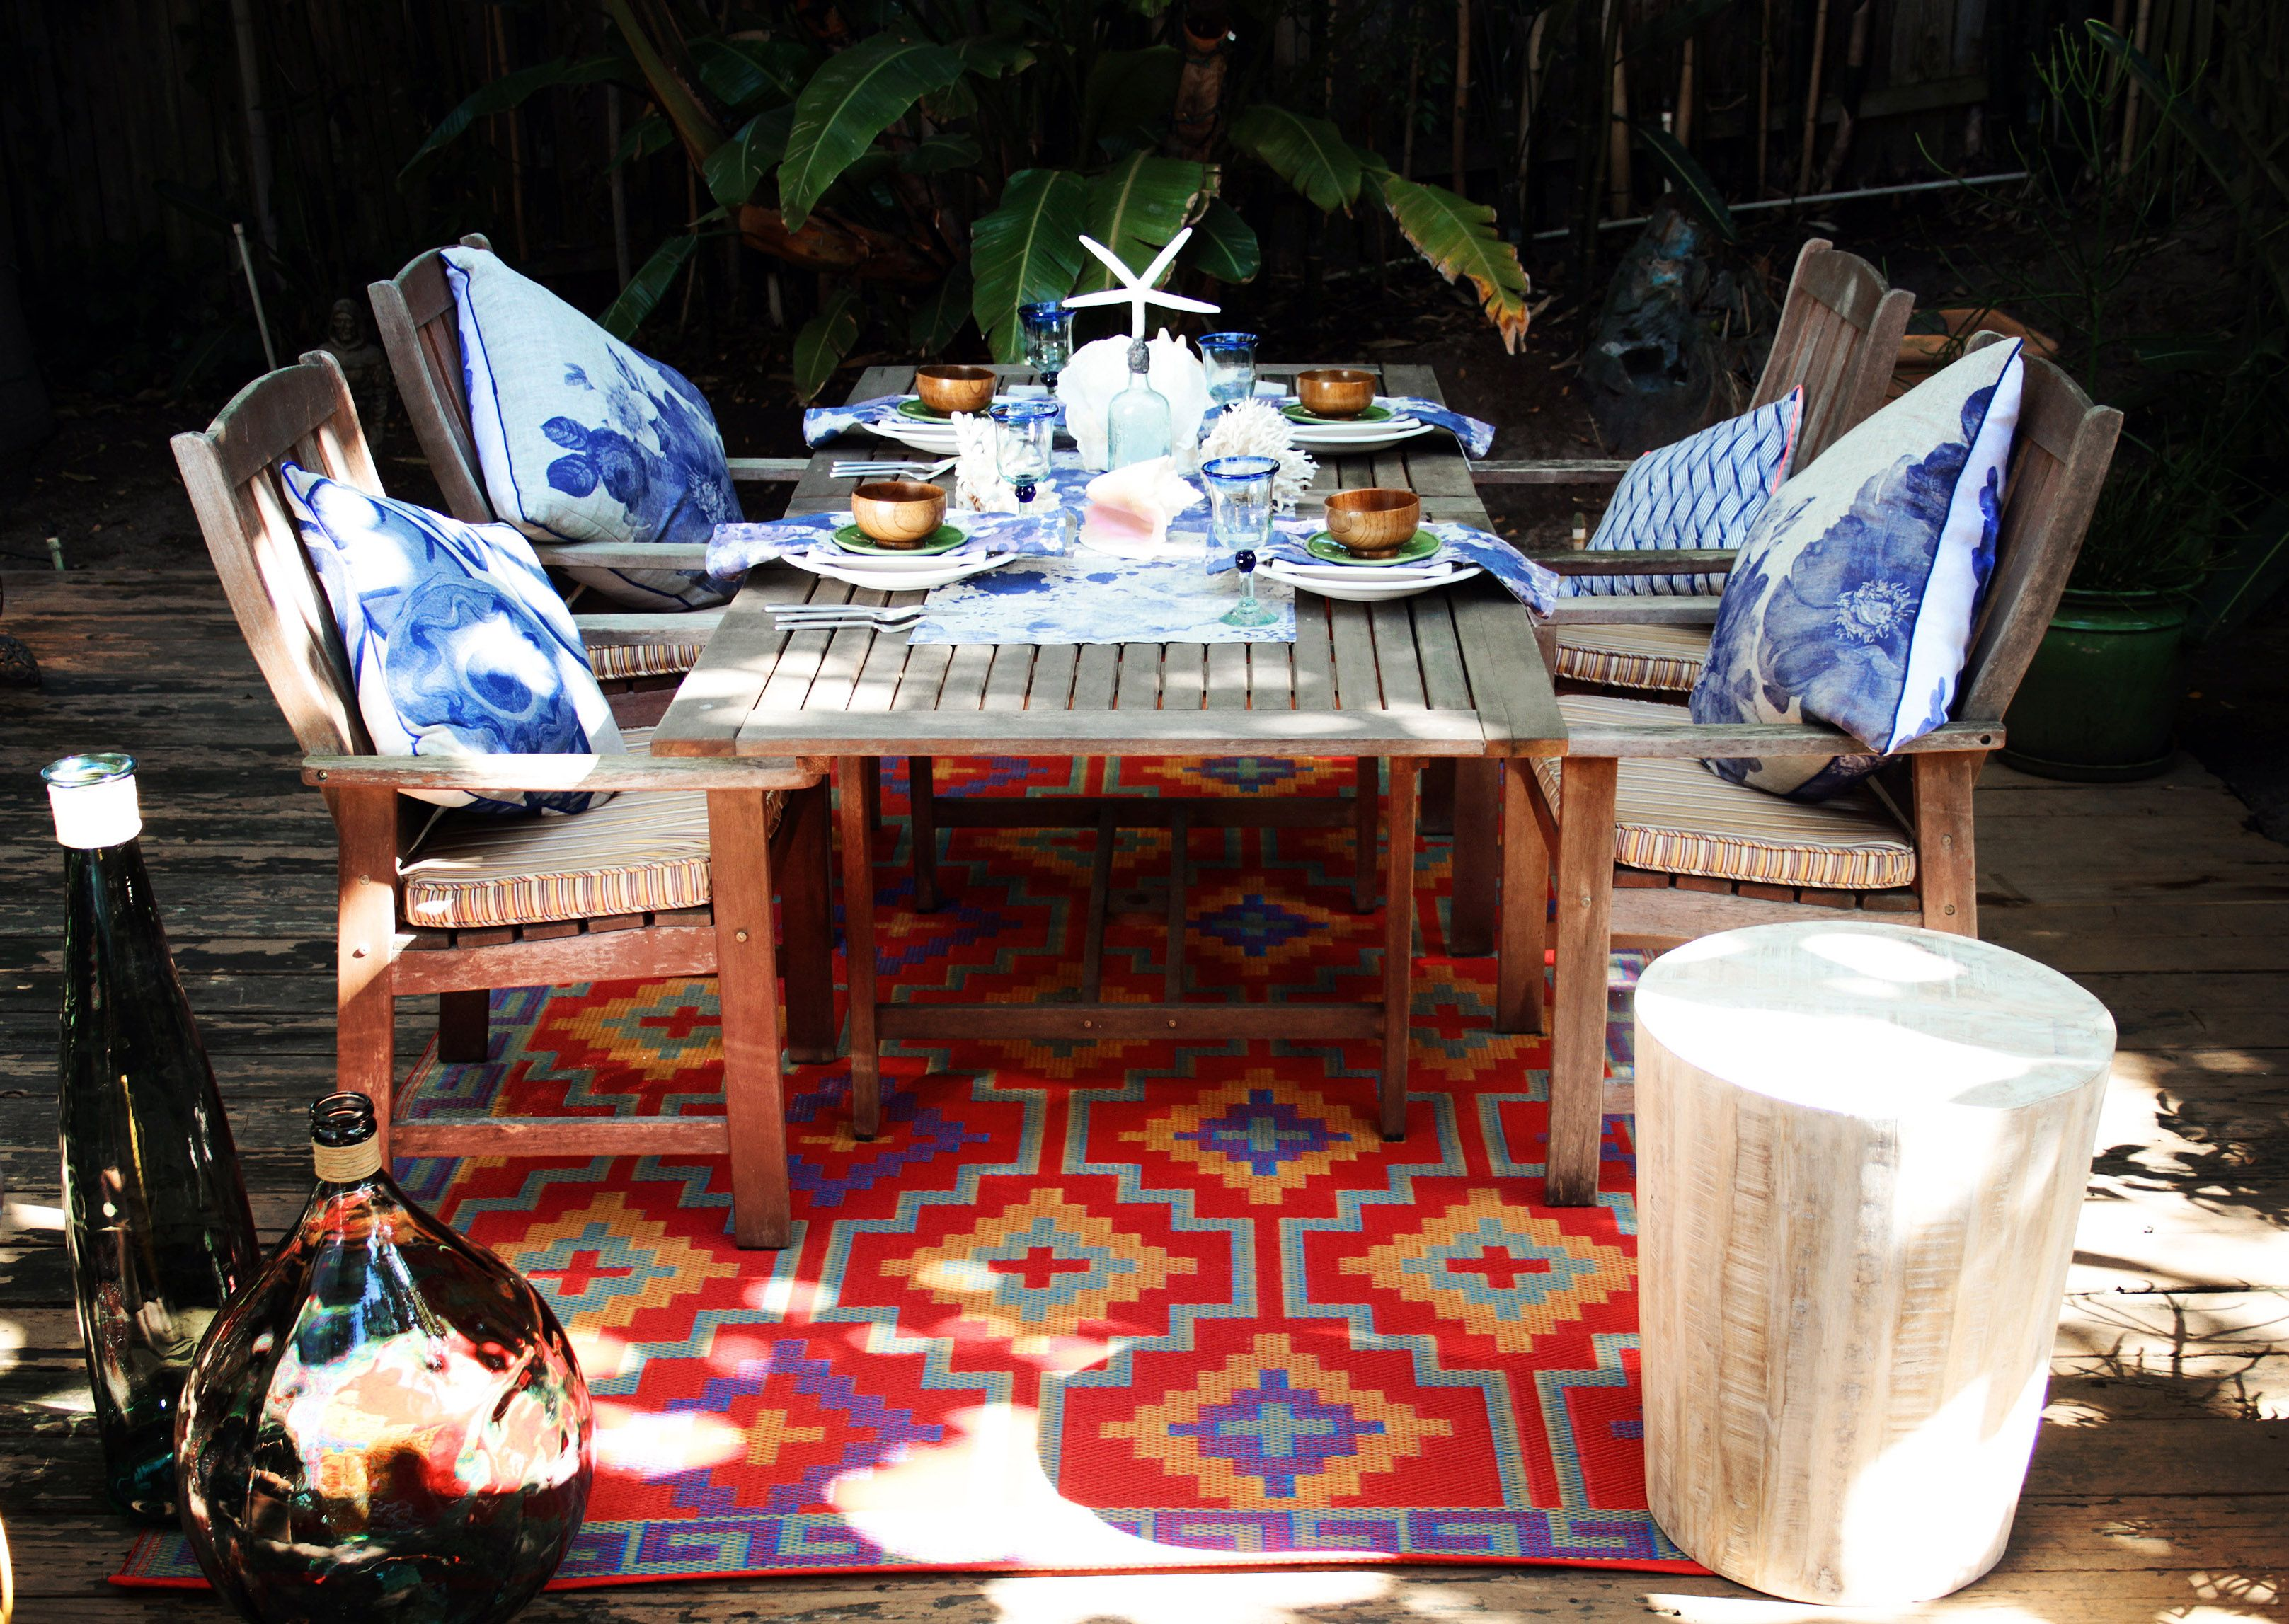 Outdoor rugs woven from recycled plastic straws is the